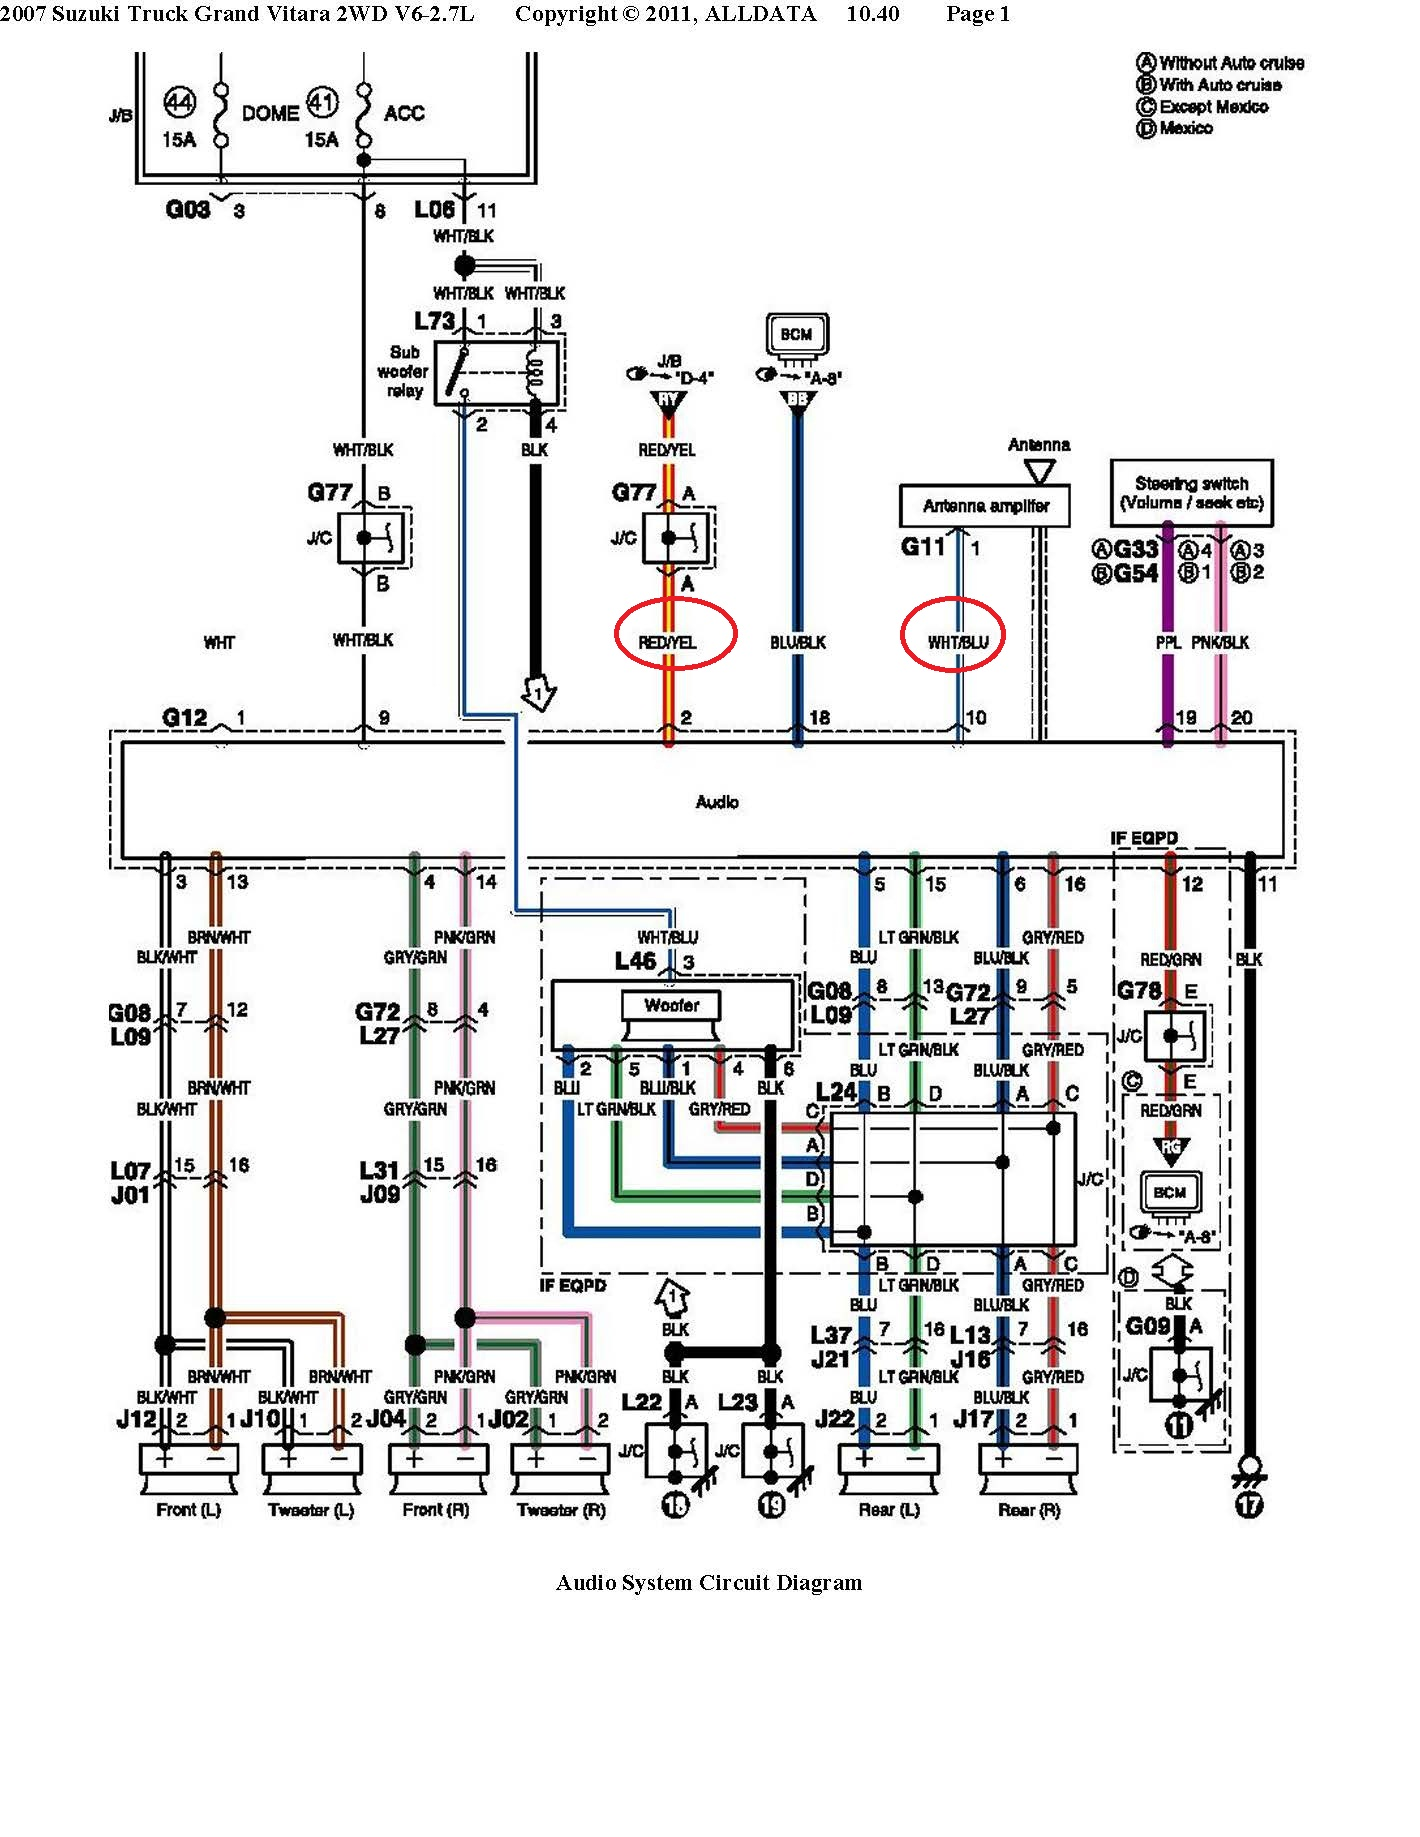 hight resolution of suzuki alto electrical wiring diagram my wiring diagram suzuki alto electrical wiring diagram suzuki alto electrical wiring diagram